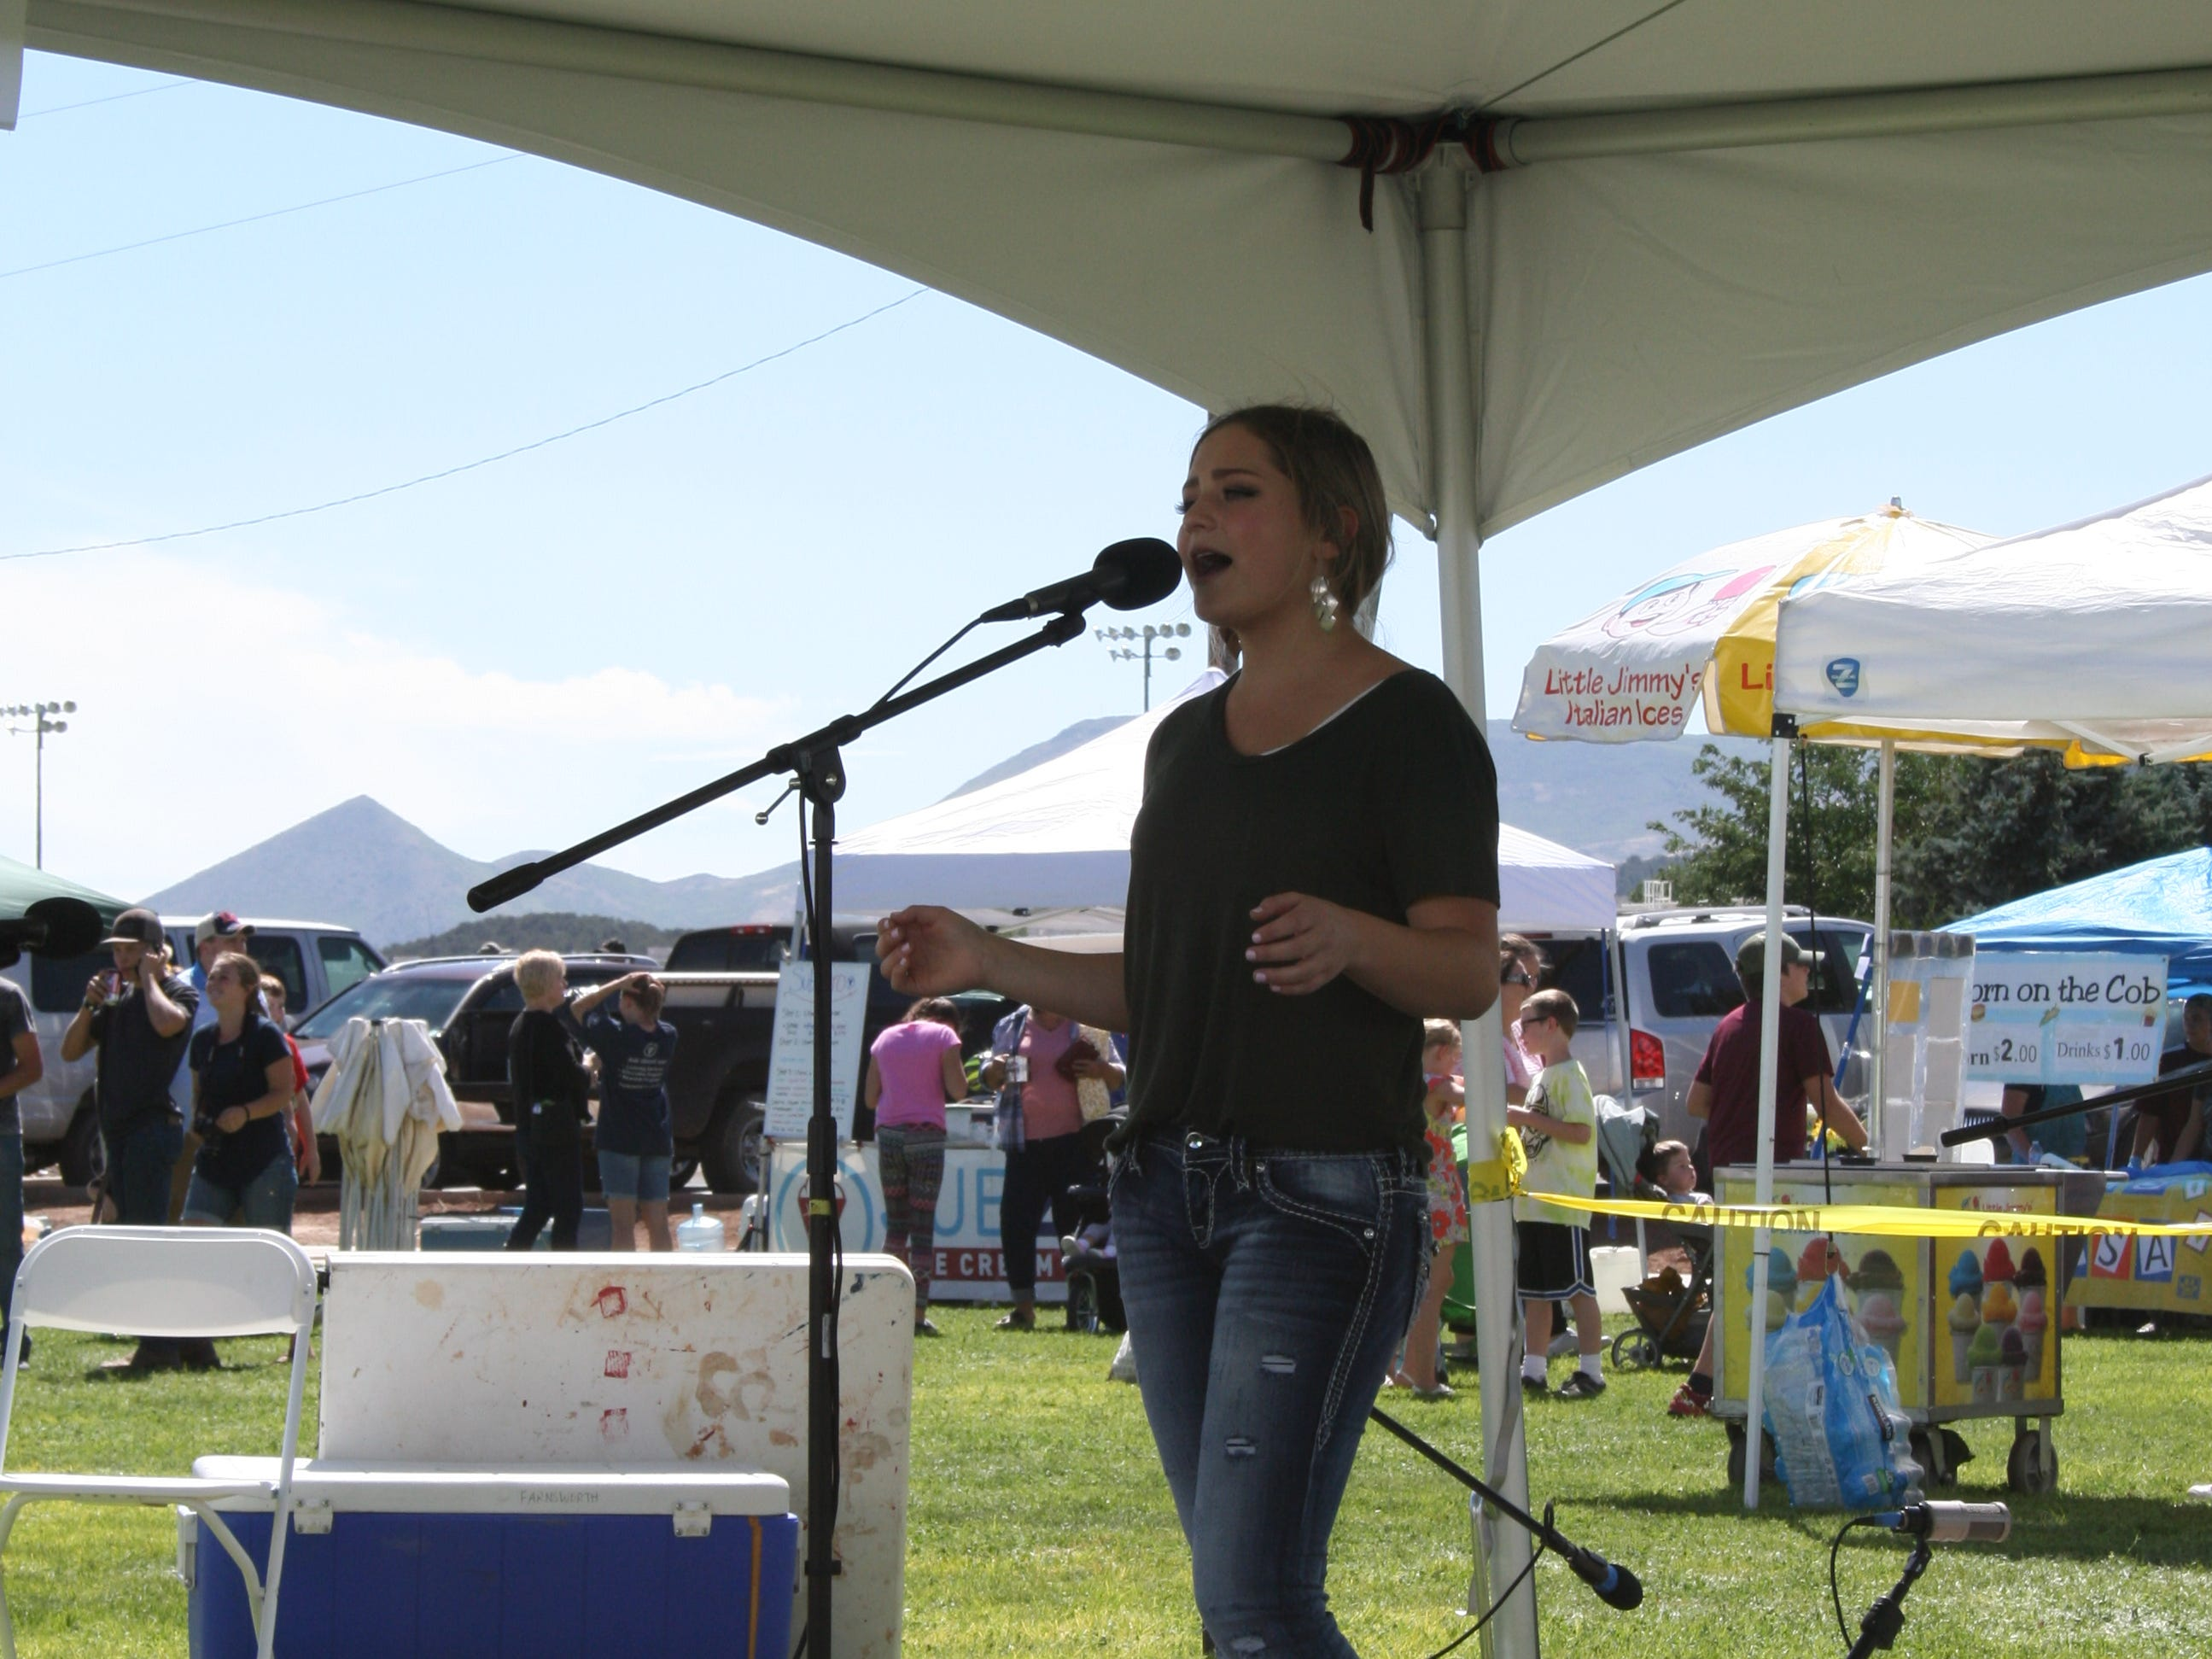 Celeste Carter sings at Cornfest in Enterprise on Aug. 25, 2018.